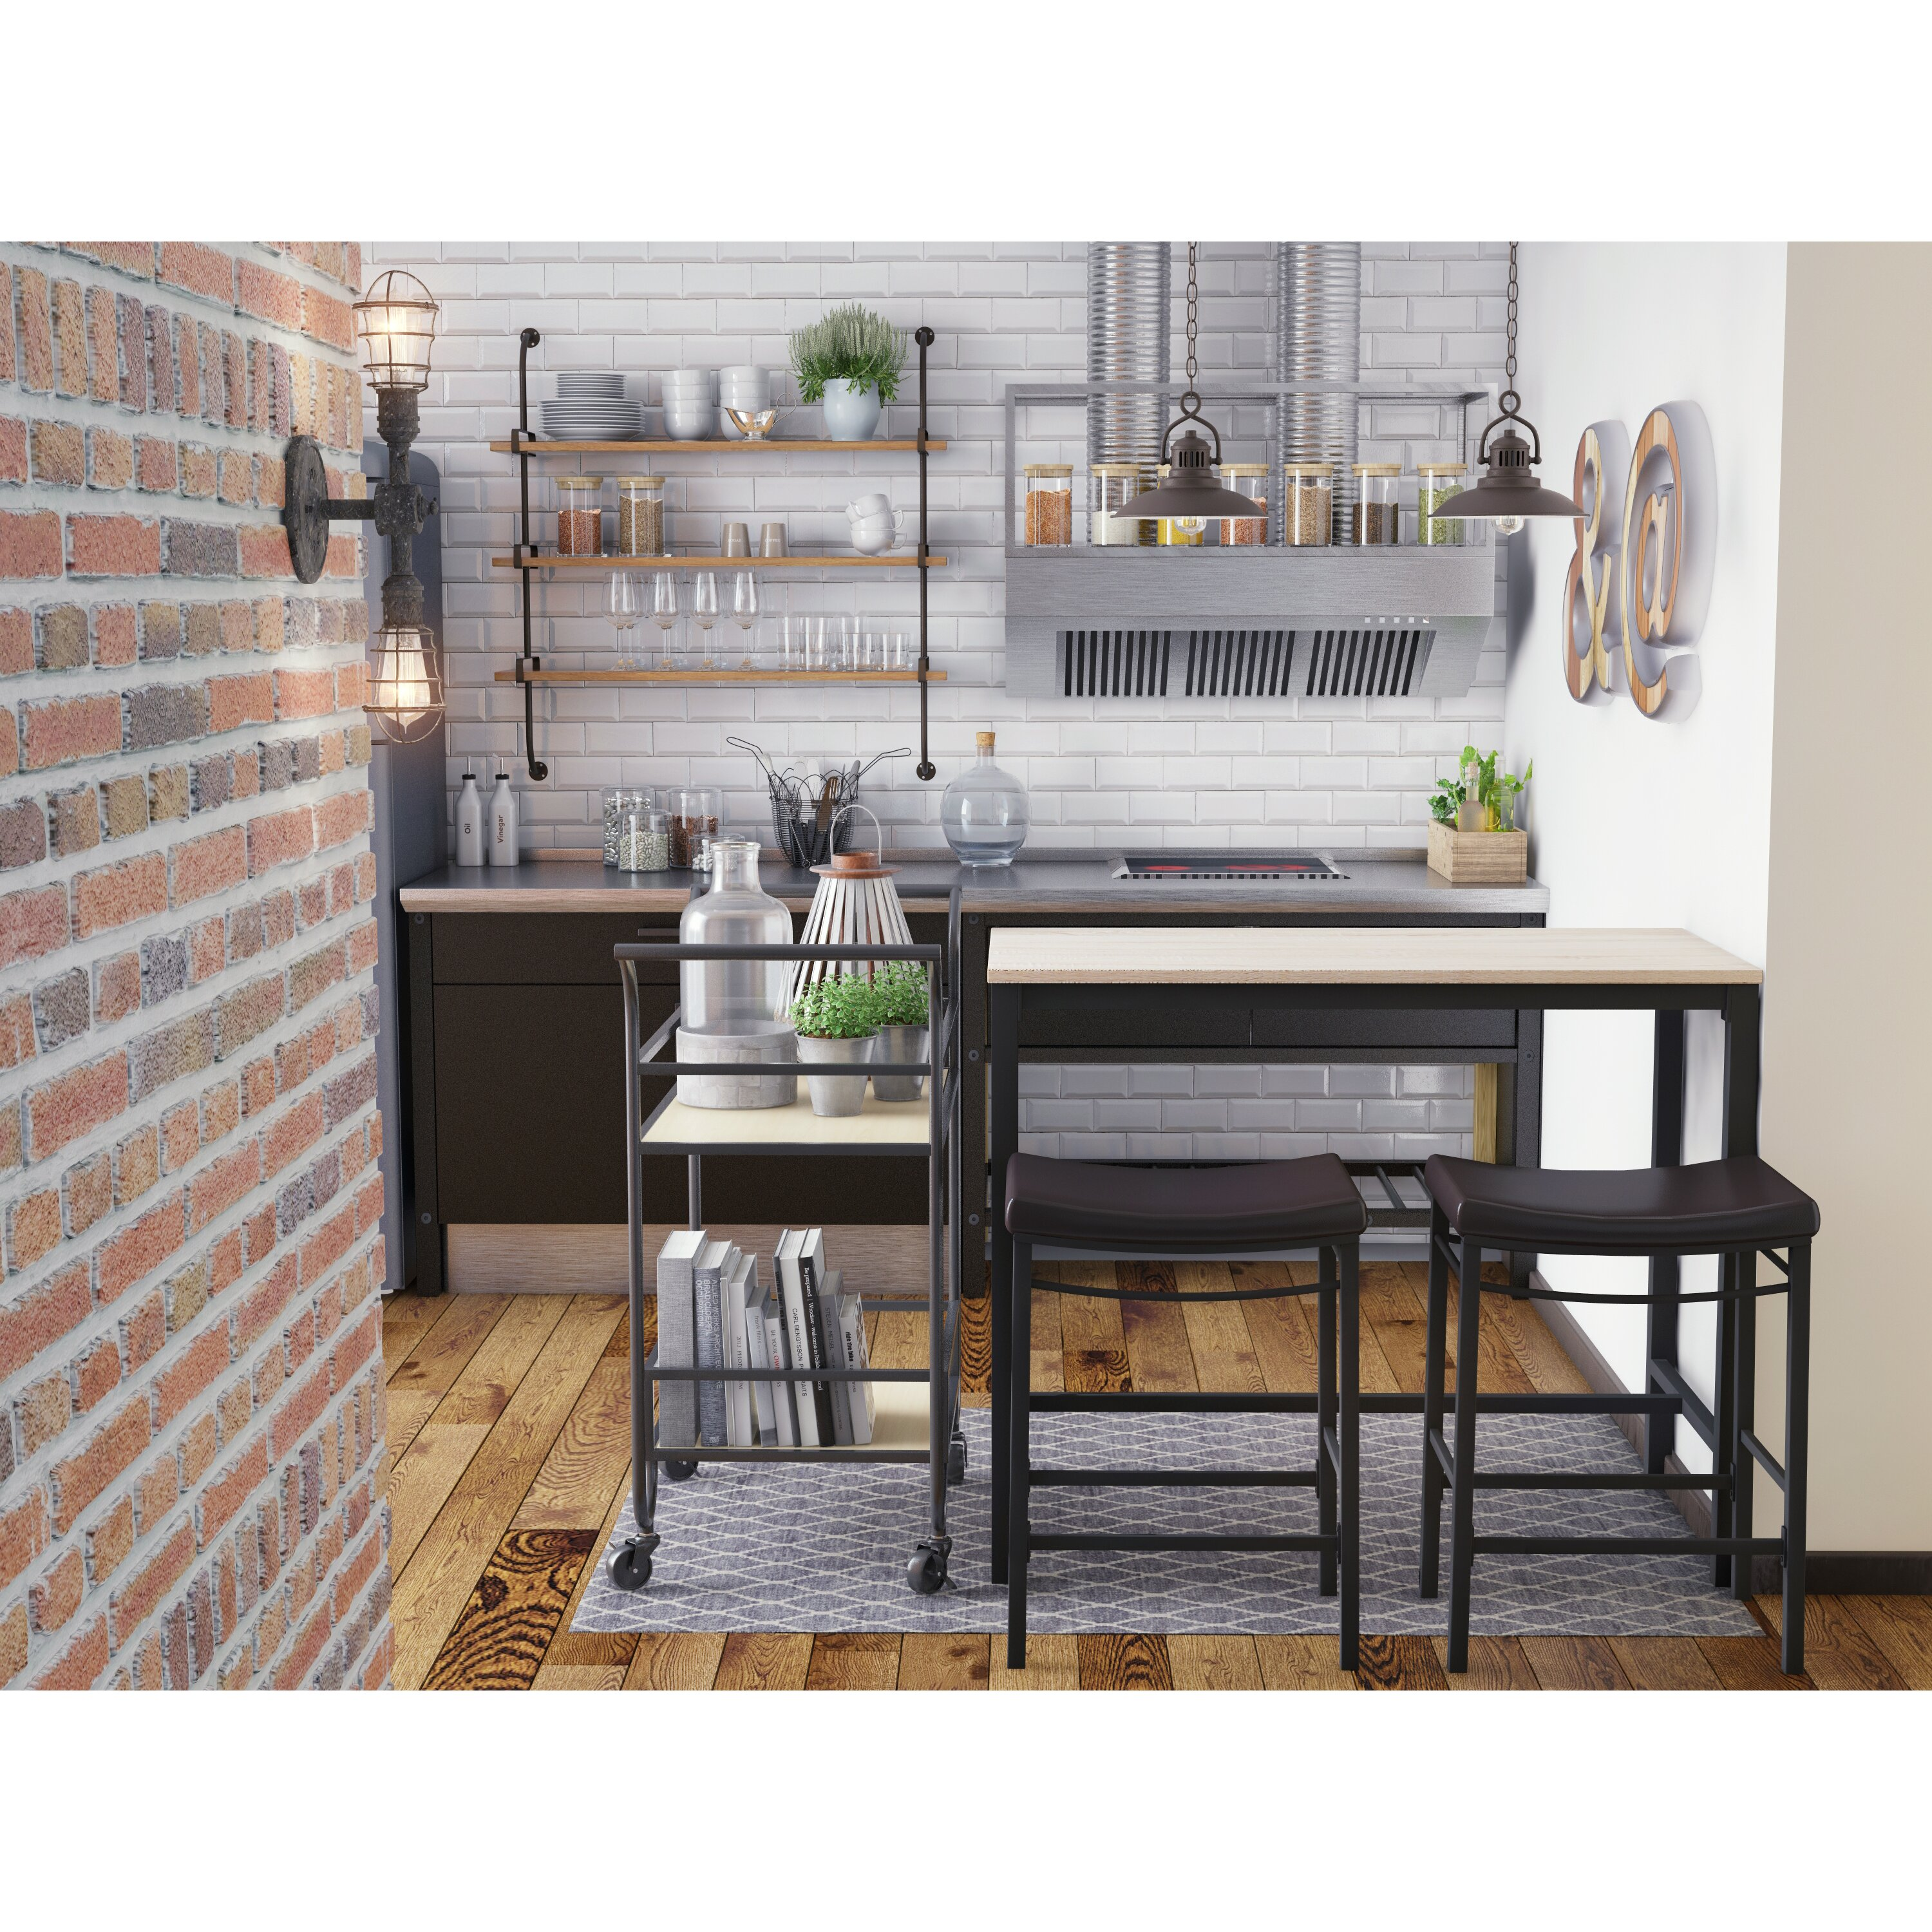 Pub Style Bistro Table Sets Pub Kitchen Table Indoor Bistro Table Chairs Amusing Kitchen